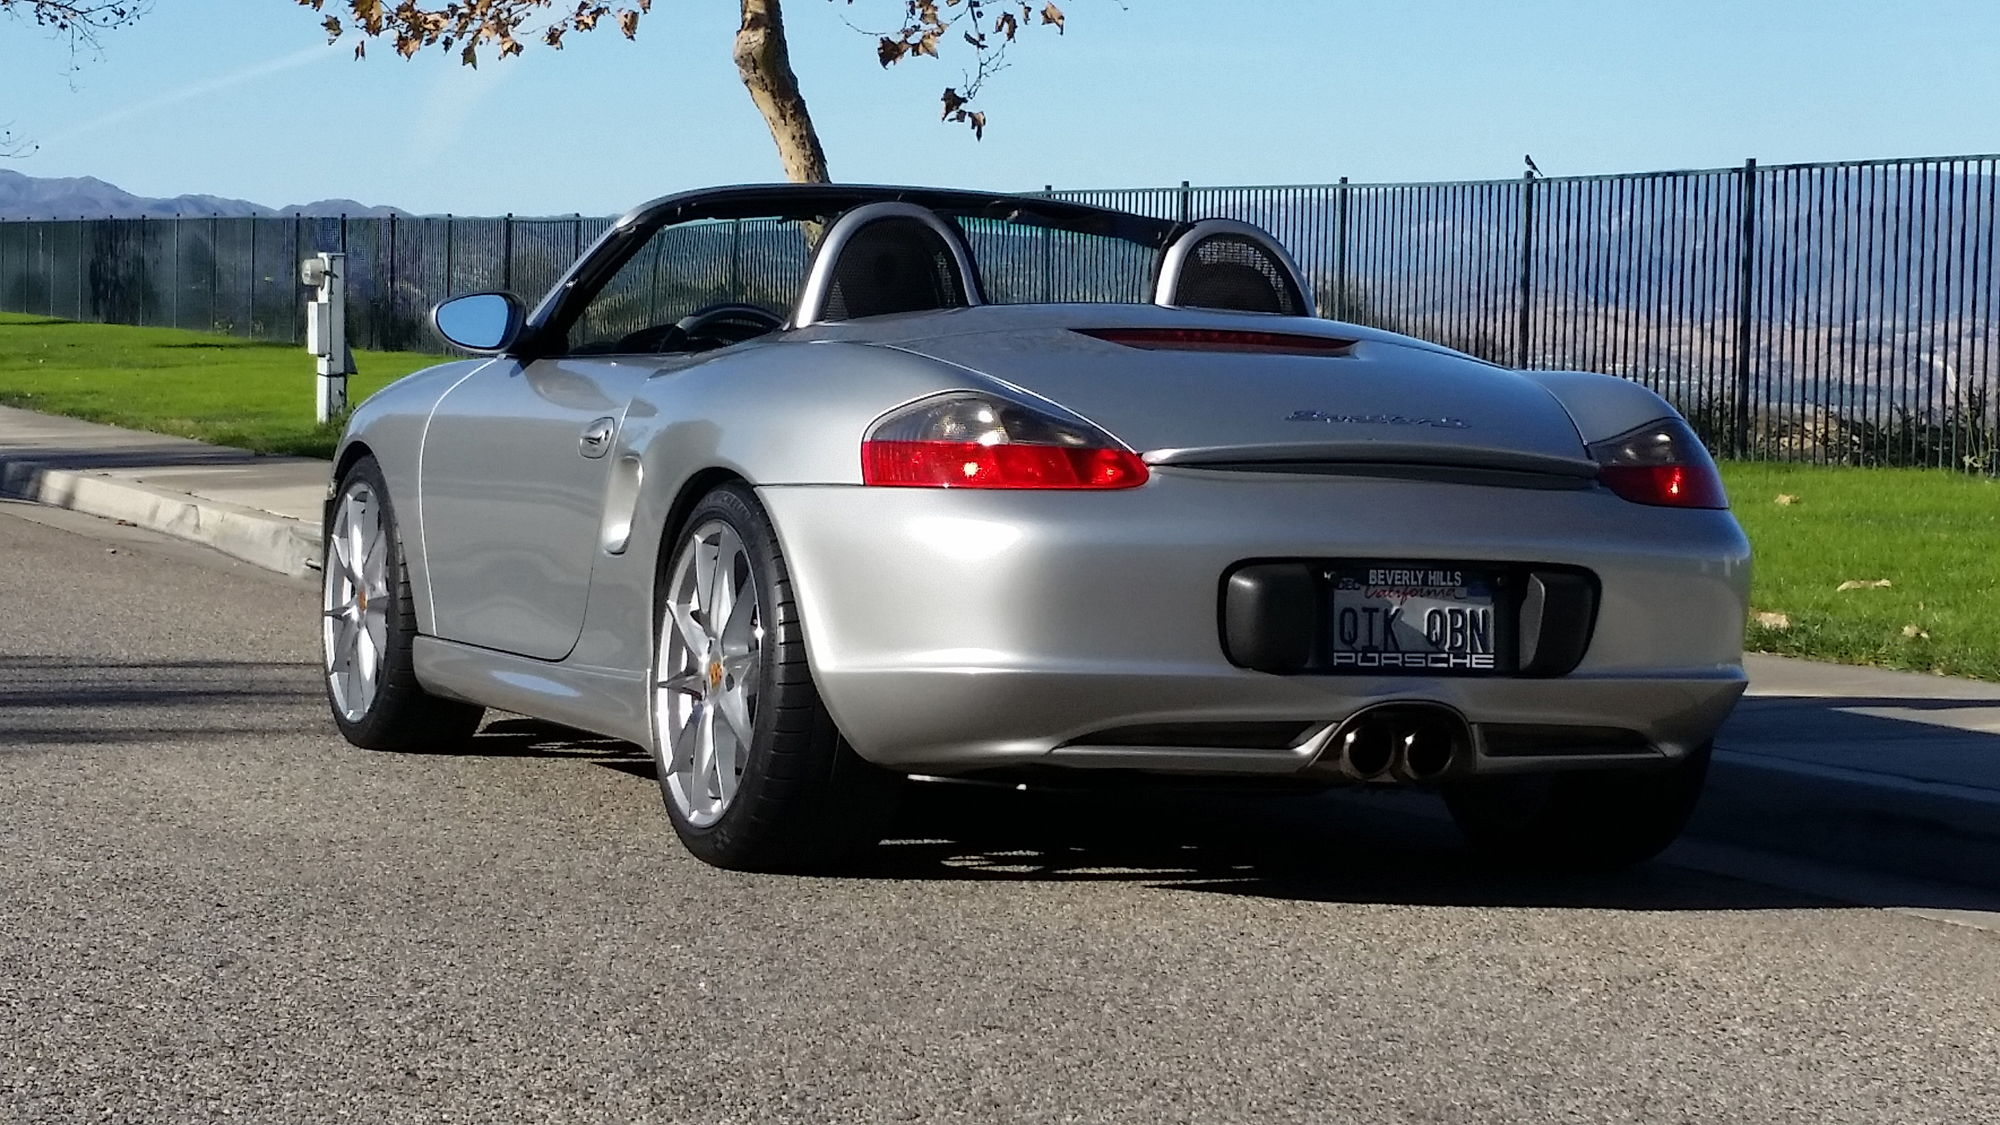 986 Boxster story